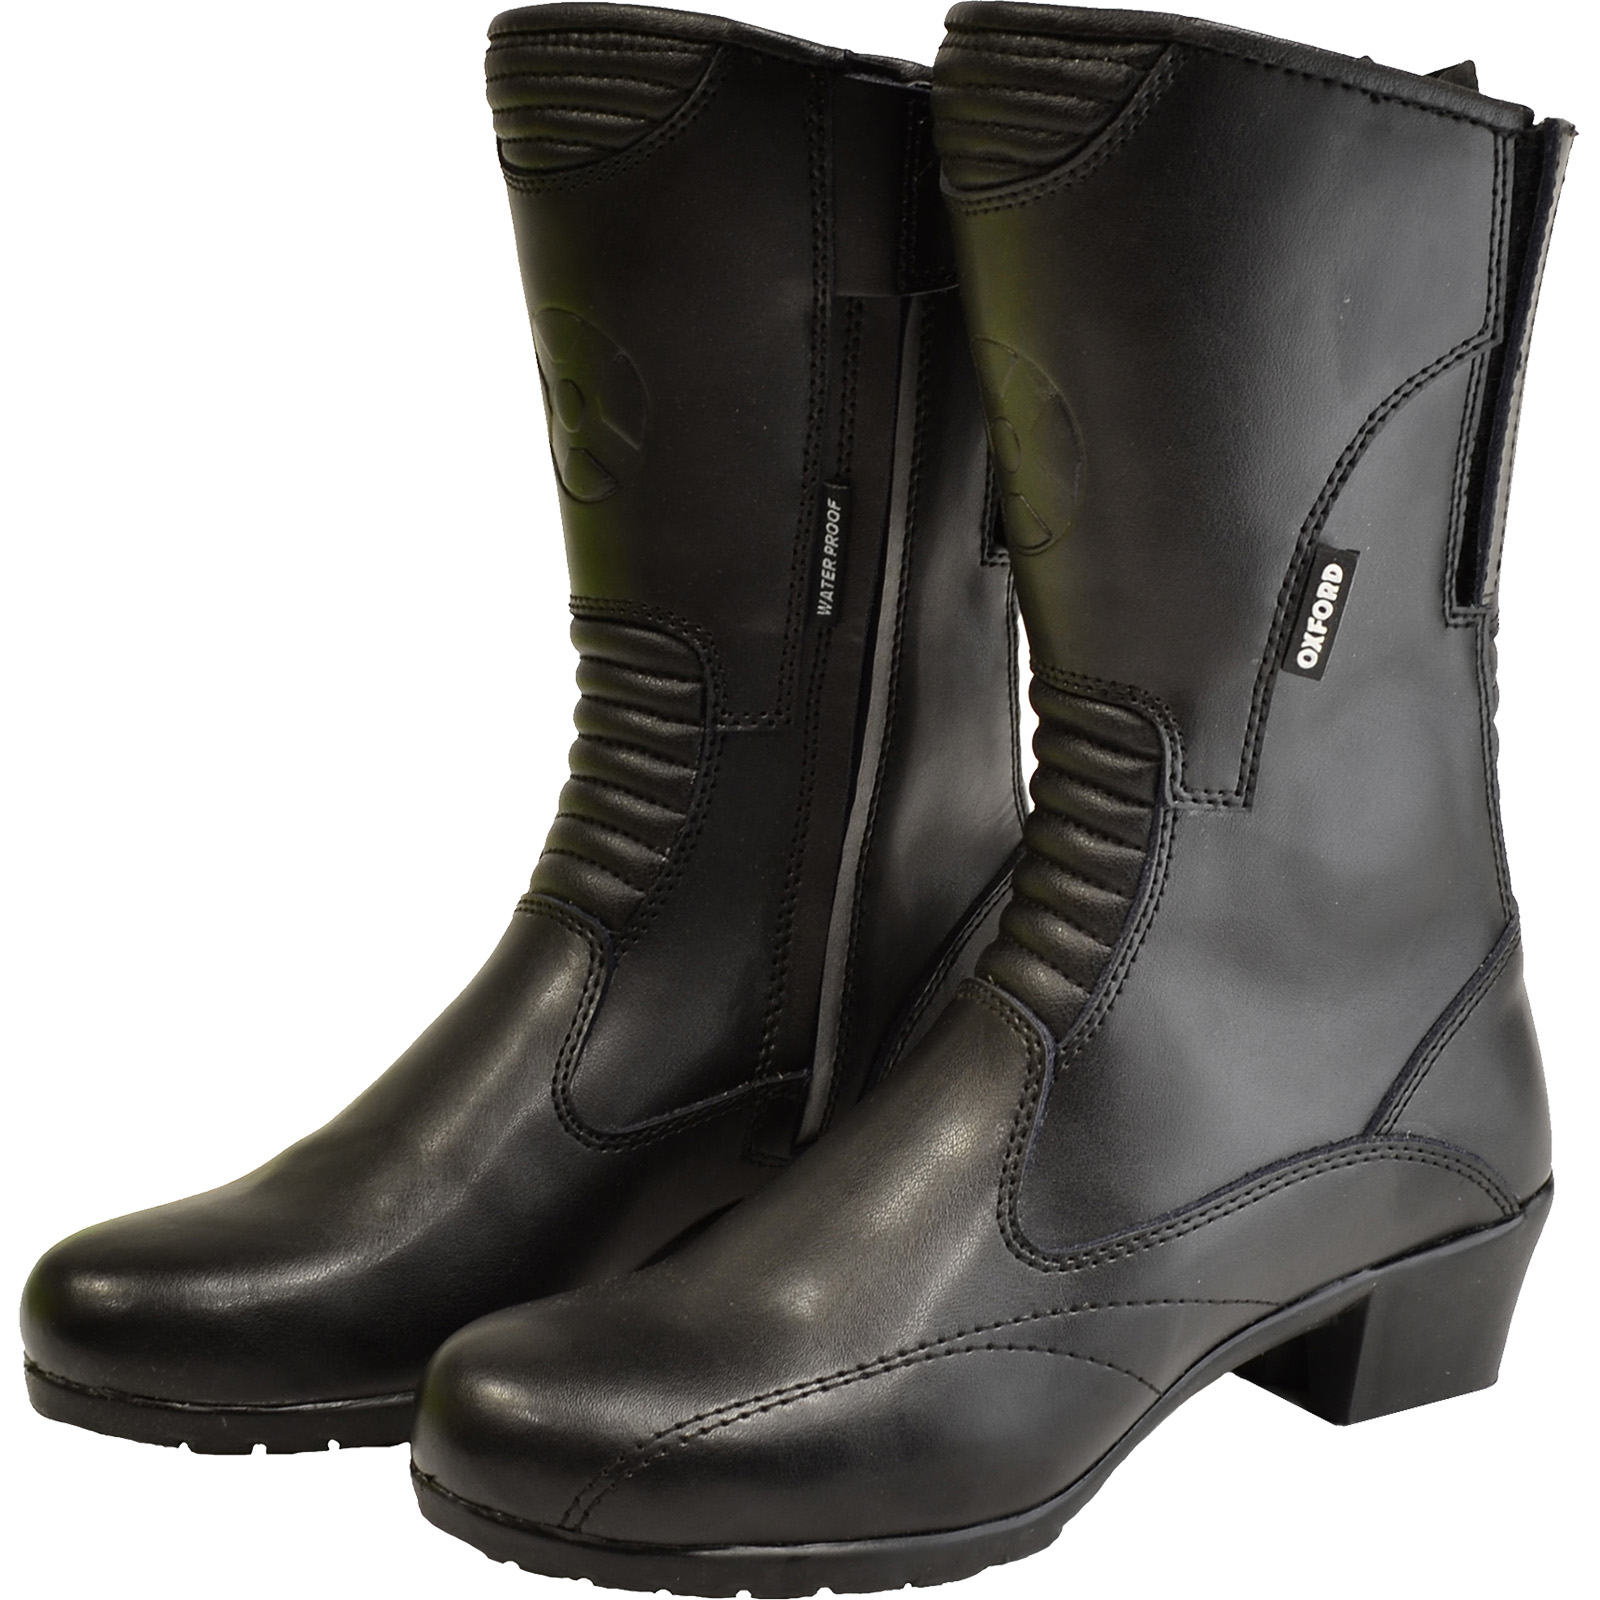 Oxford Savannah Ladies Leather Motorcycle Boots Waterproof Womens ...